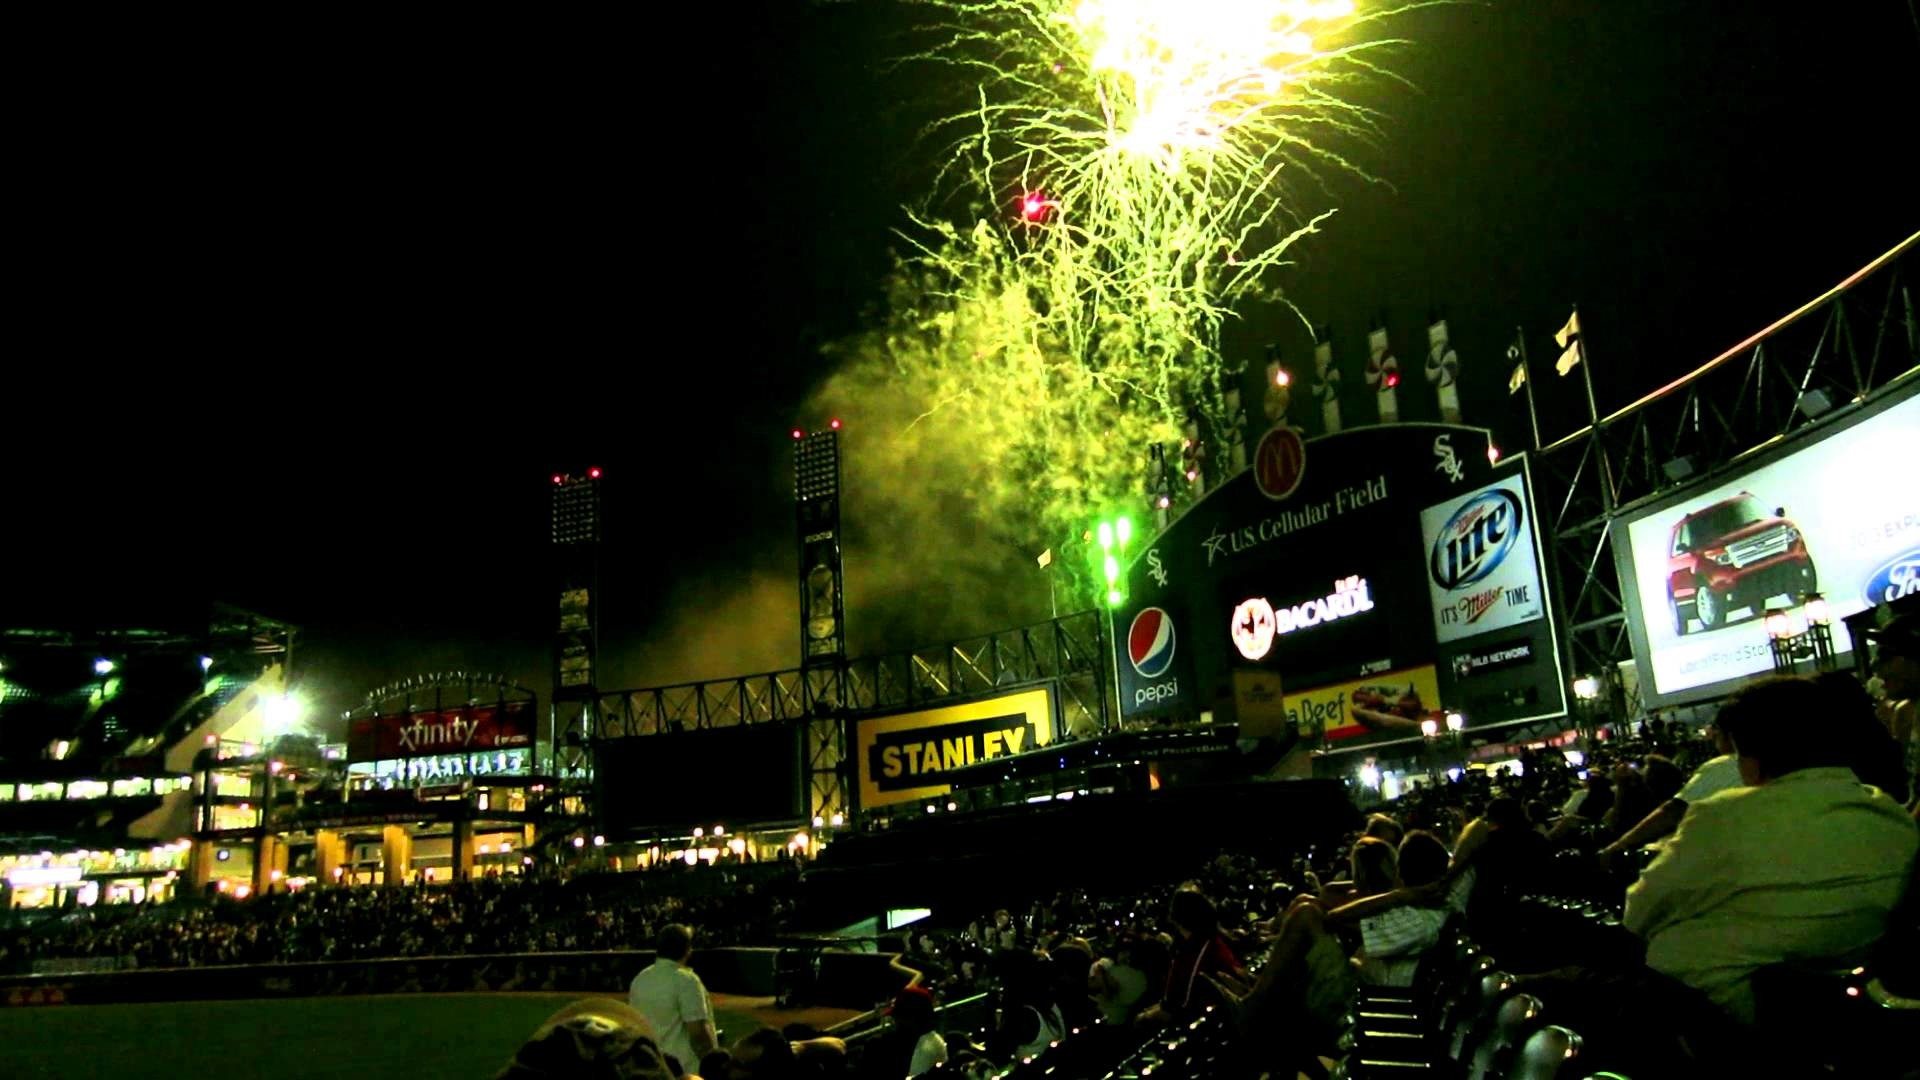 Chicago white sox baseball game fireworks on friday night. Video taken with  canon s100.